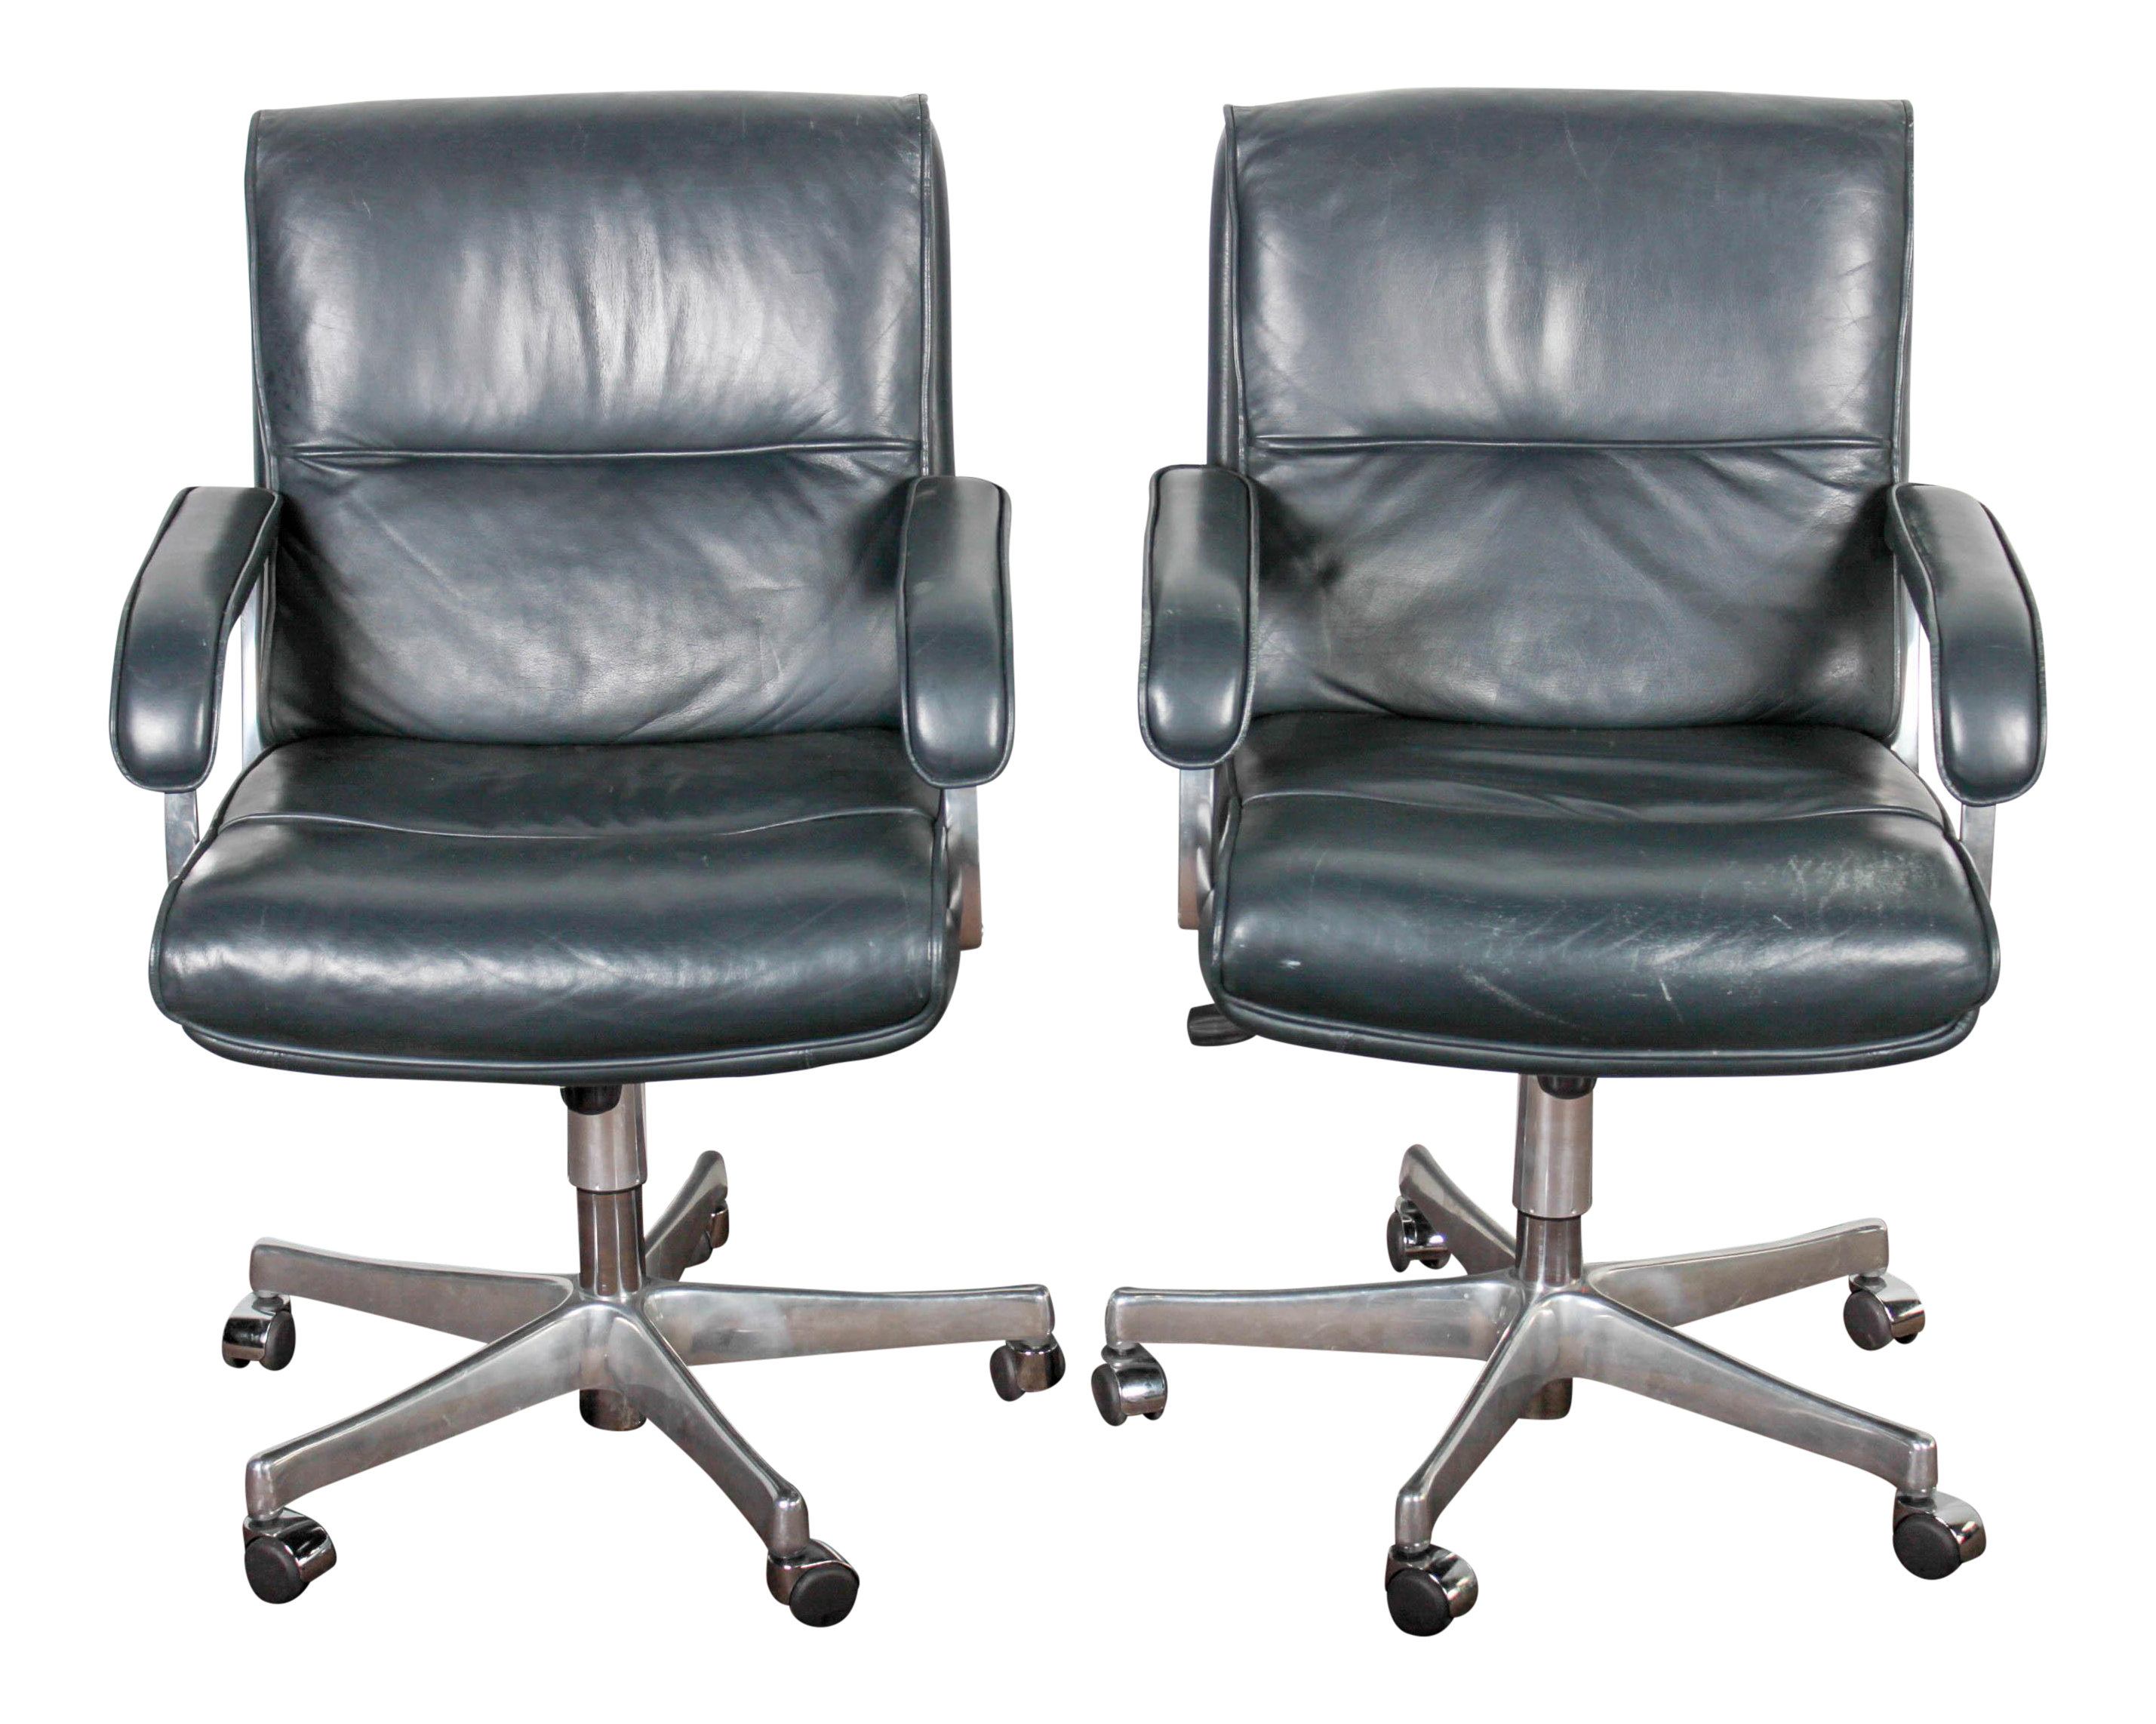 Classic Desk Chairs vintage & used office chairs | chairish